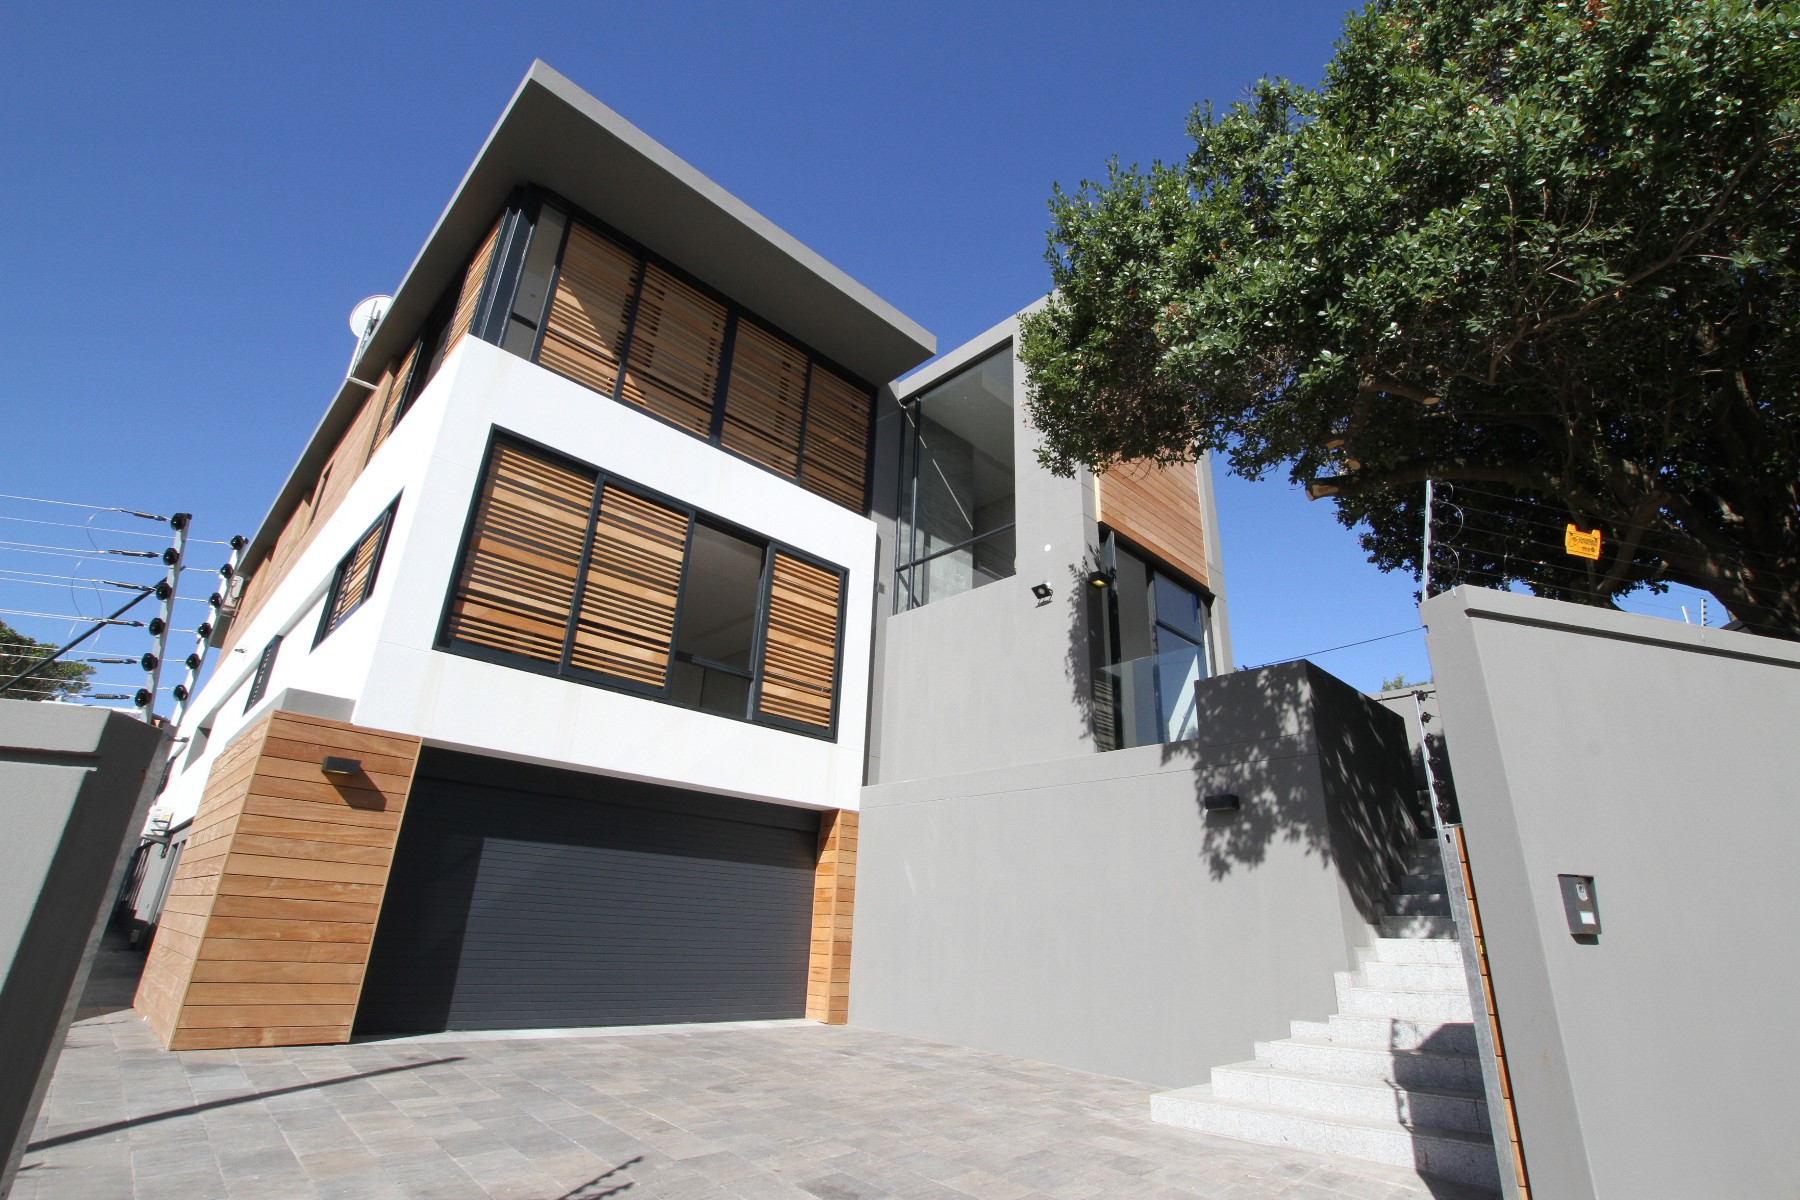 Single Family Home for Sale at One Beachy Head Drive Plettenberg Bay, Western Cape, 6600 South Africa